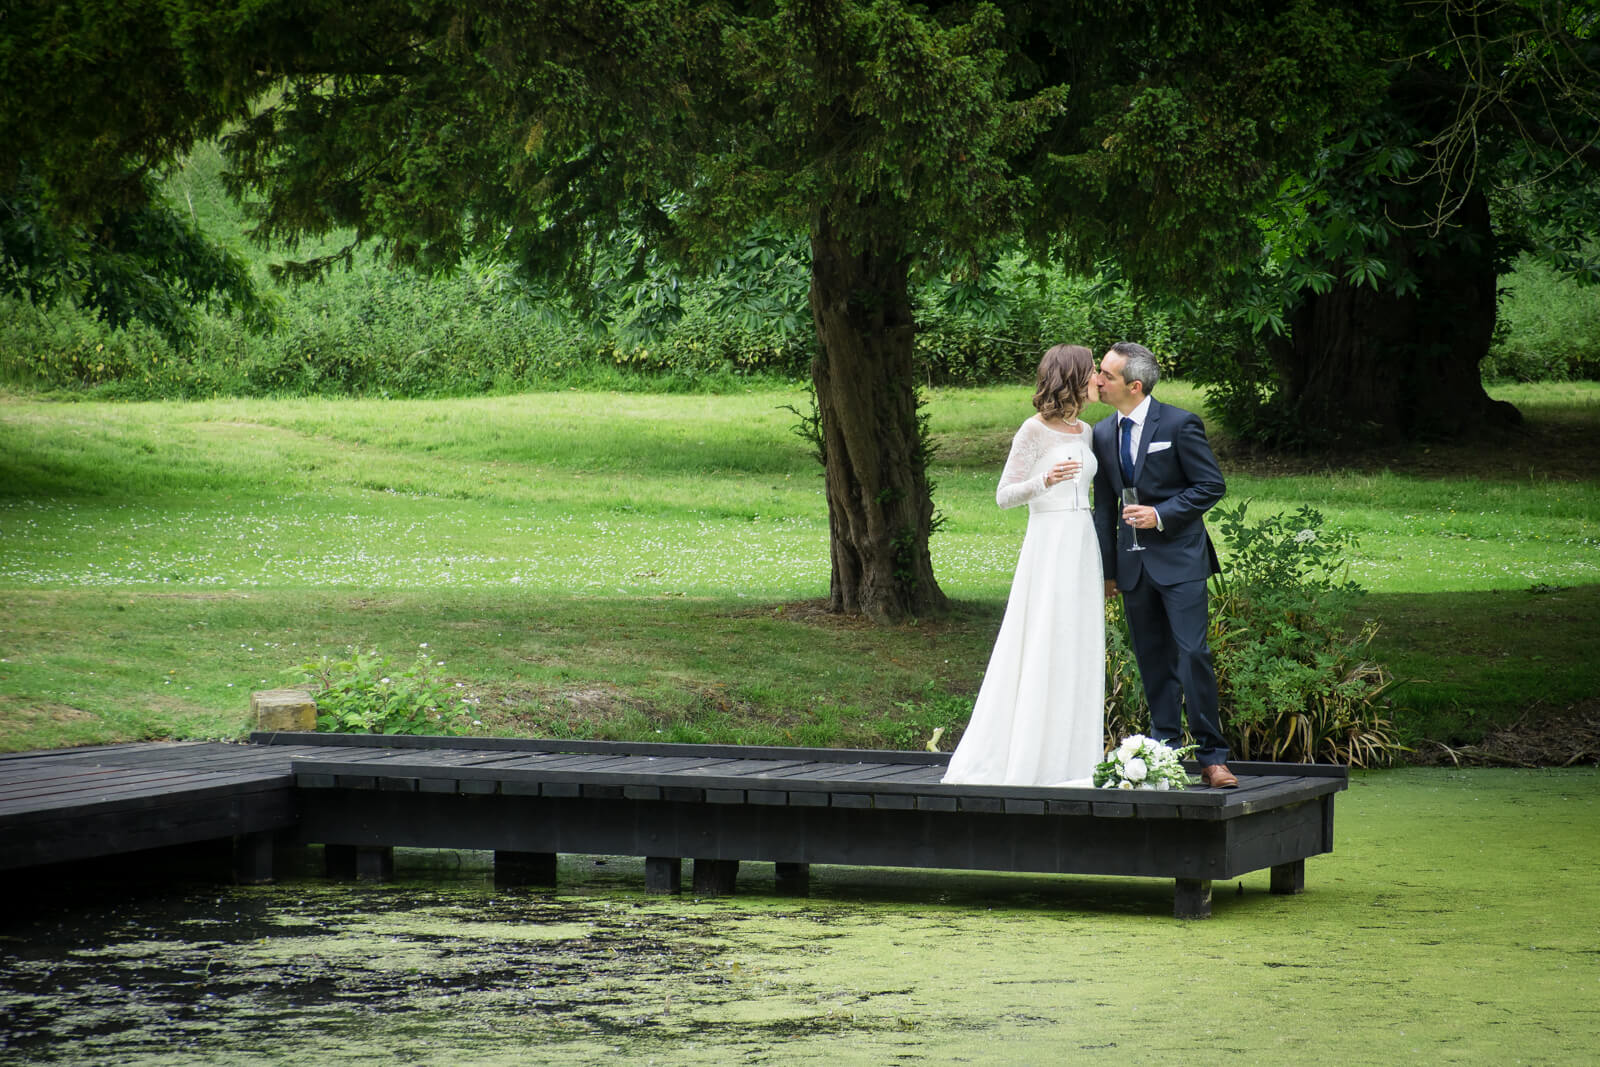 Bride and groom kiss at the end of a jetty into a green lake